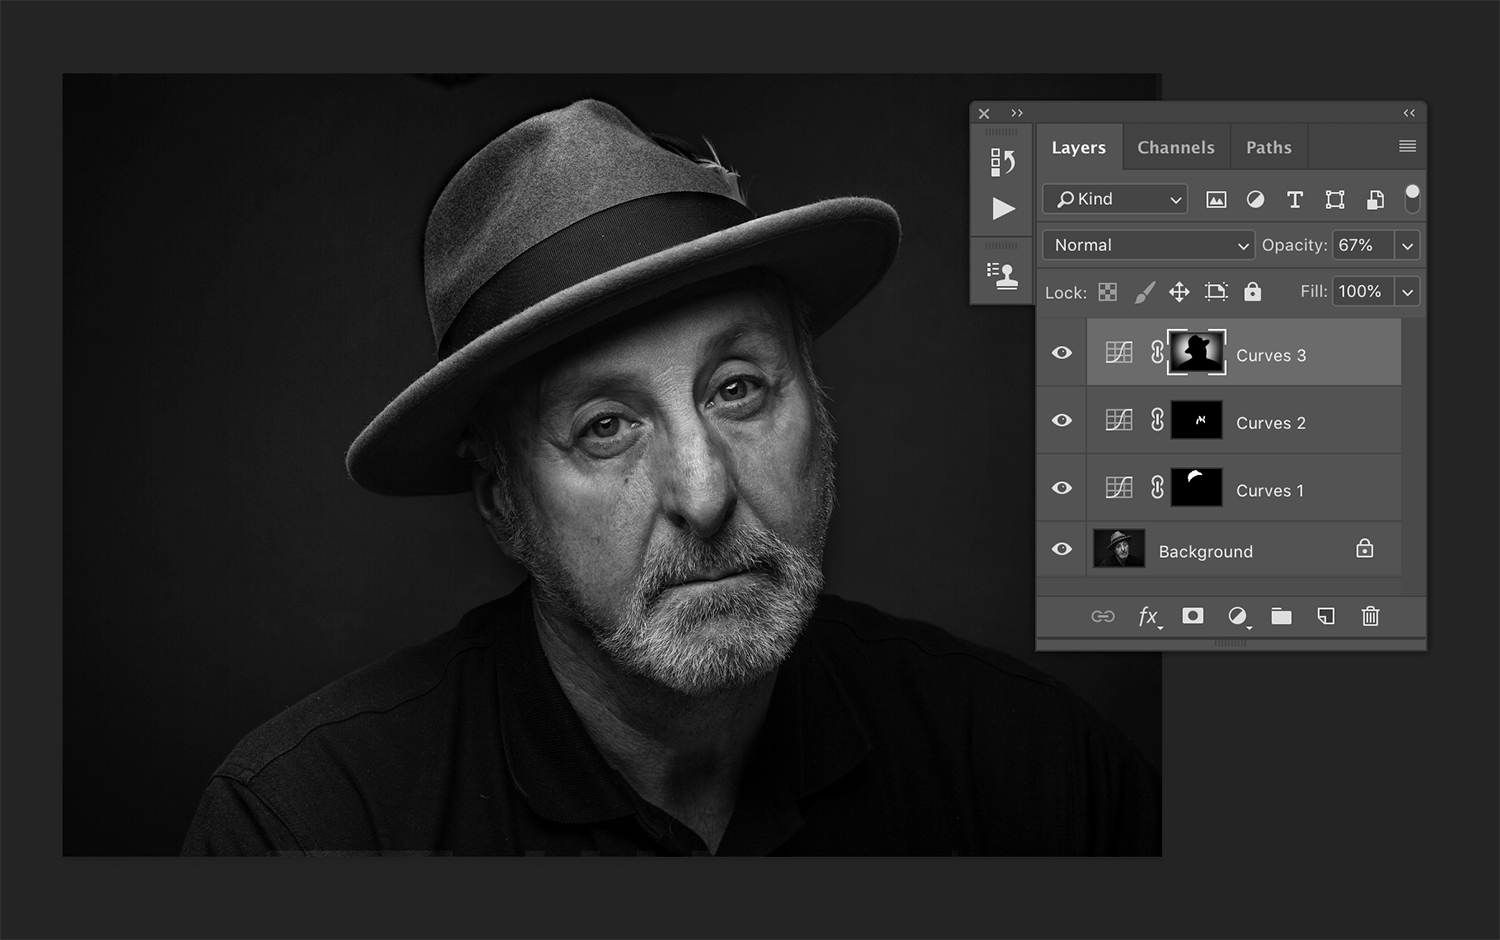 Using layer masks in processing black and white images.